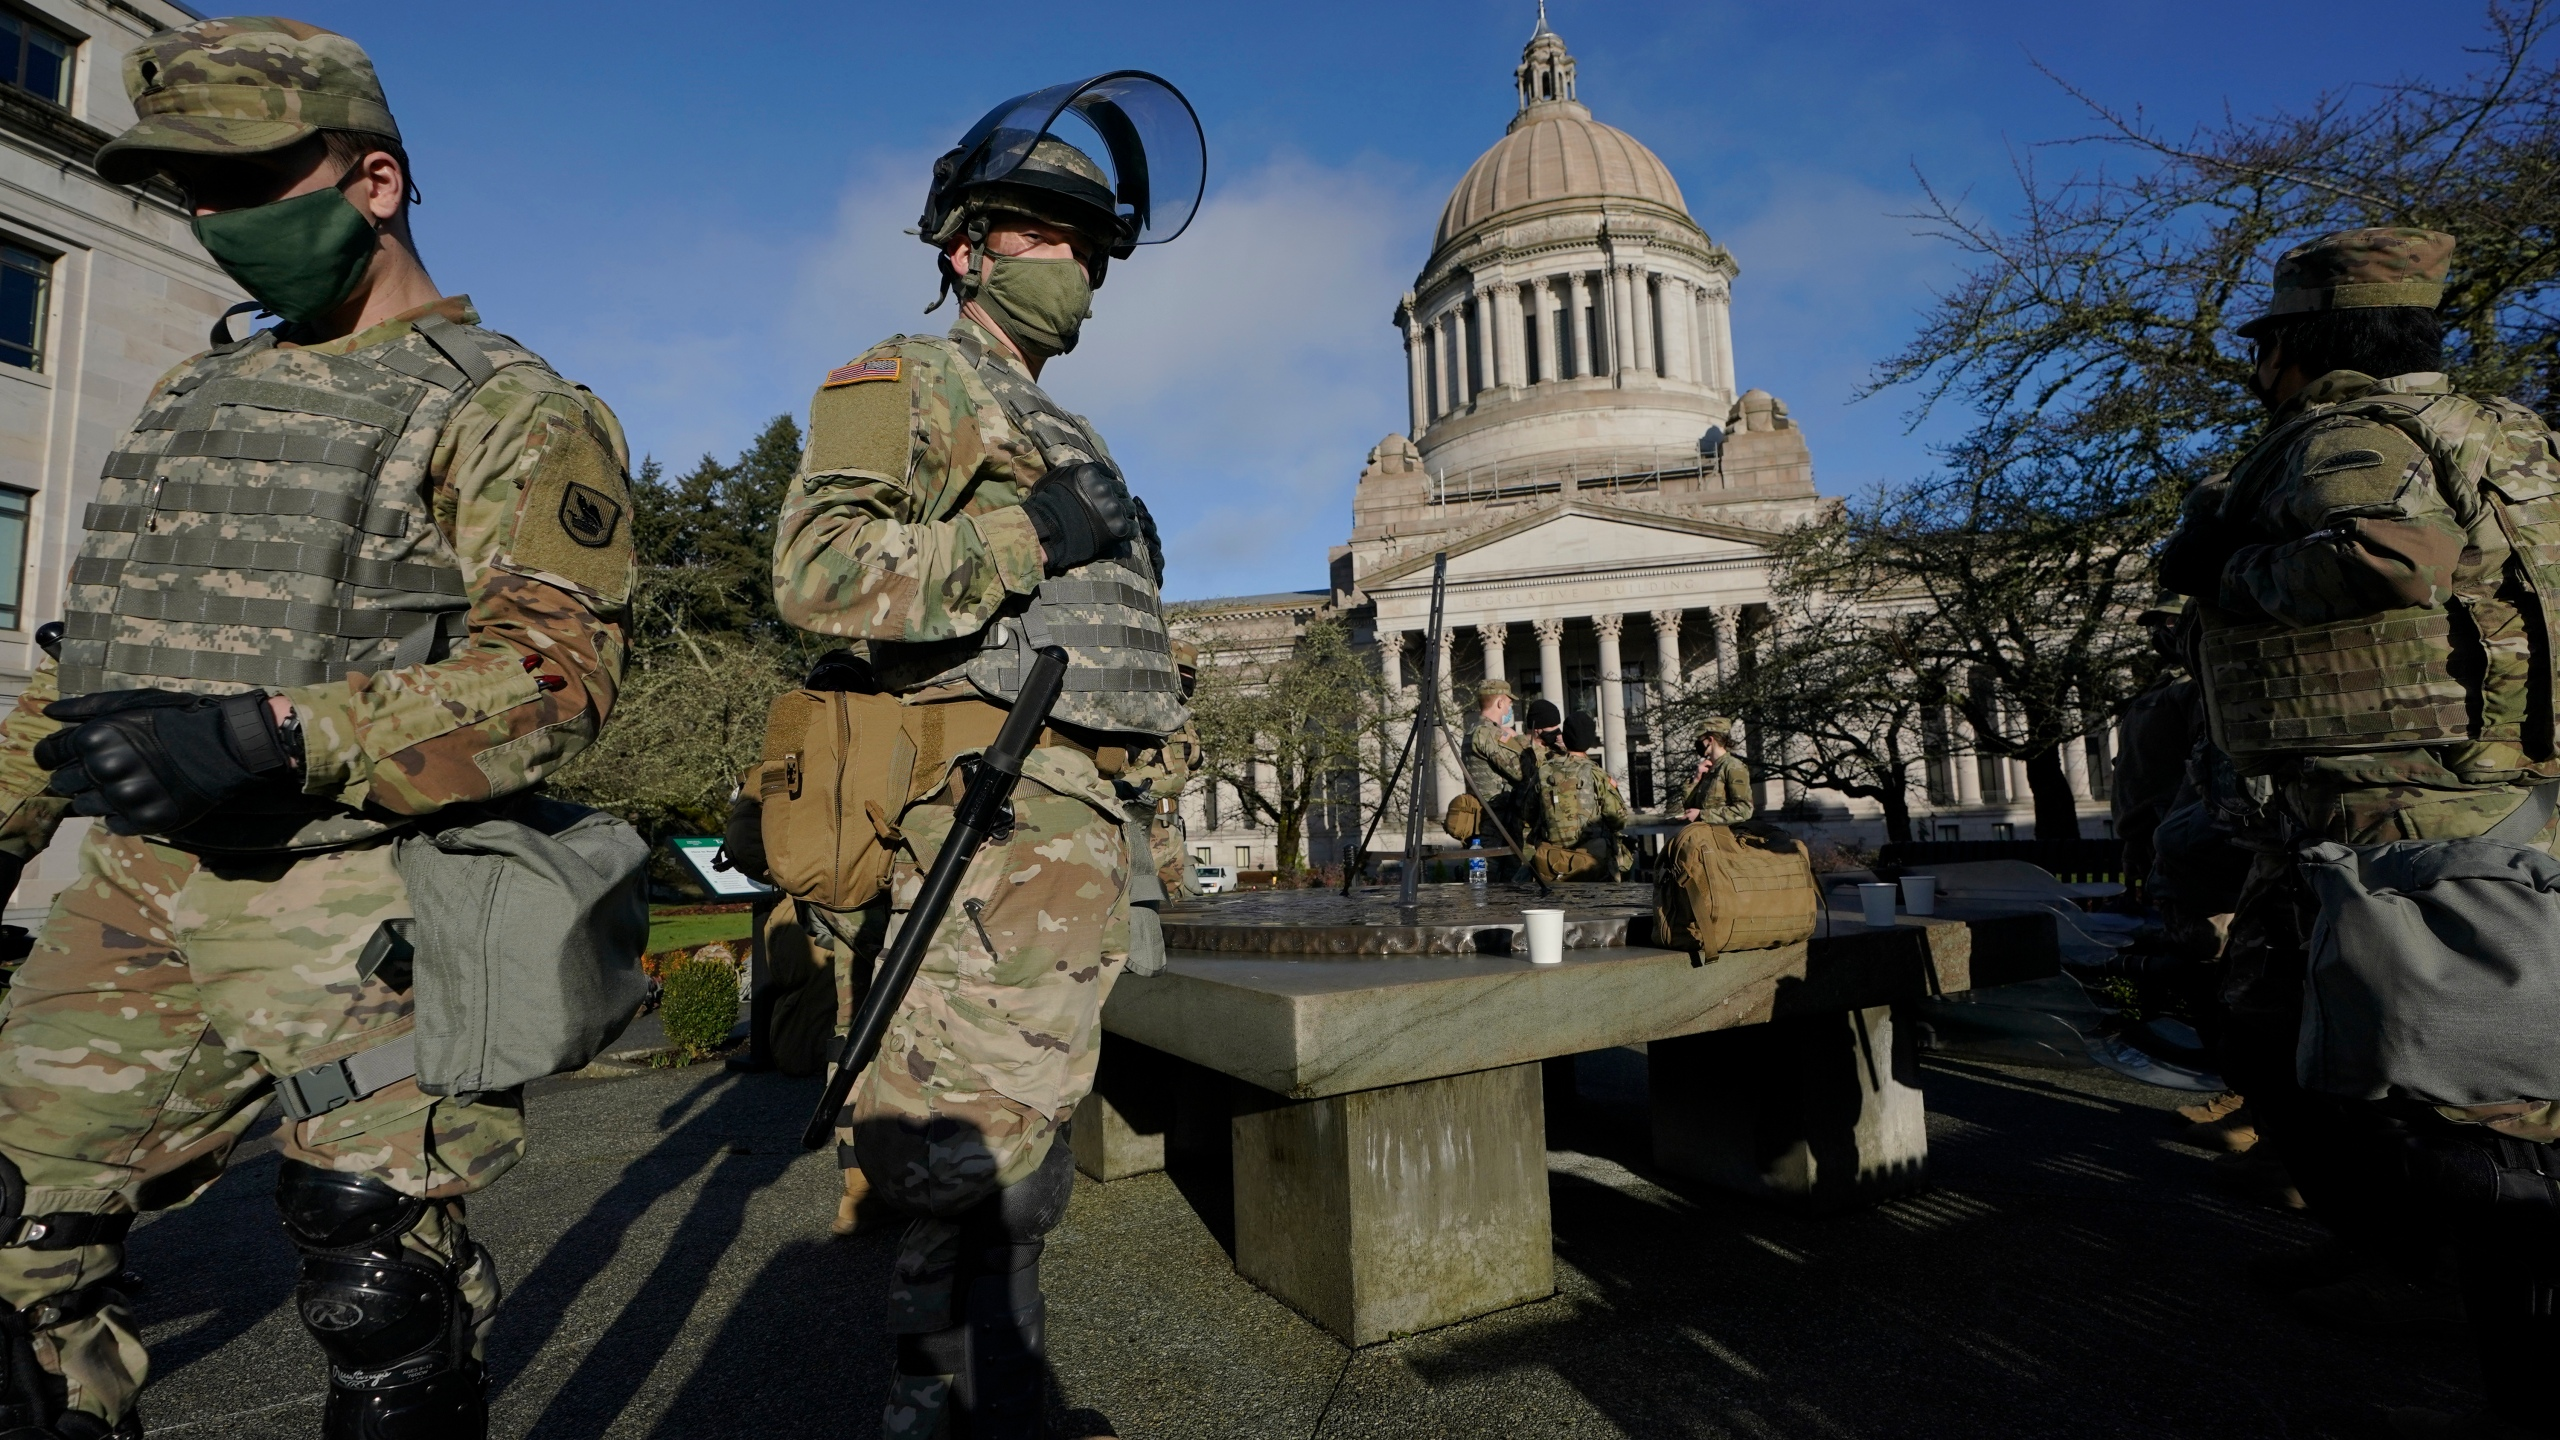 Members of the Washington National Guard stand at a sundial near the Legislative Building, Sunday, Jan. 10, 2021, at the Capitol in Olympia, Wash. (AP Photo/Ted S. Warren)